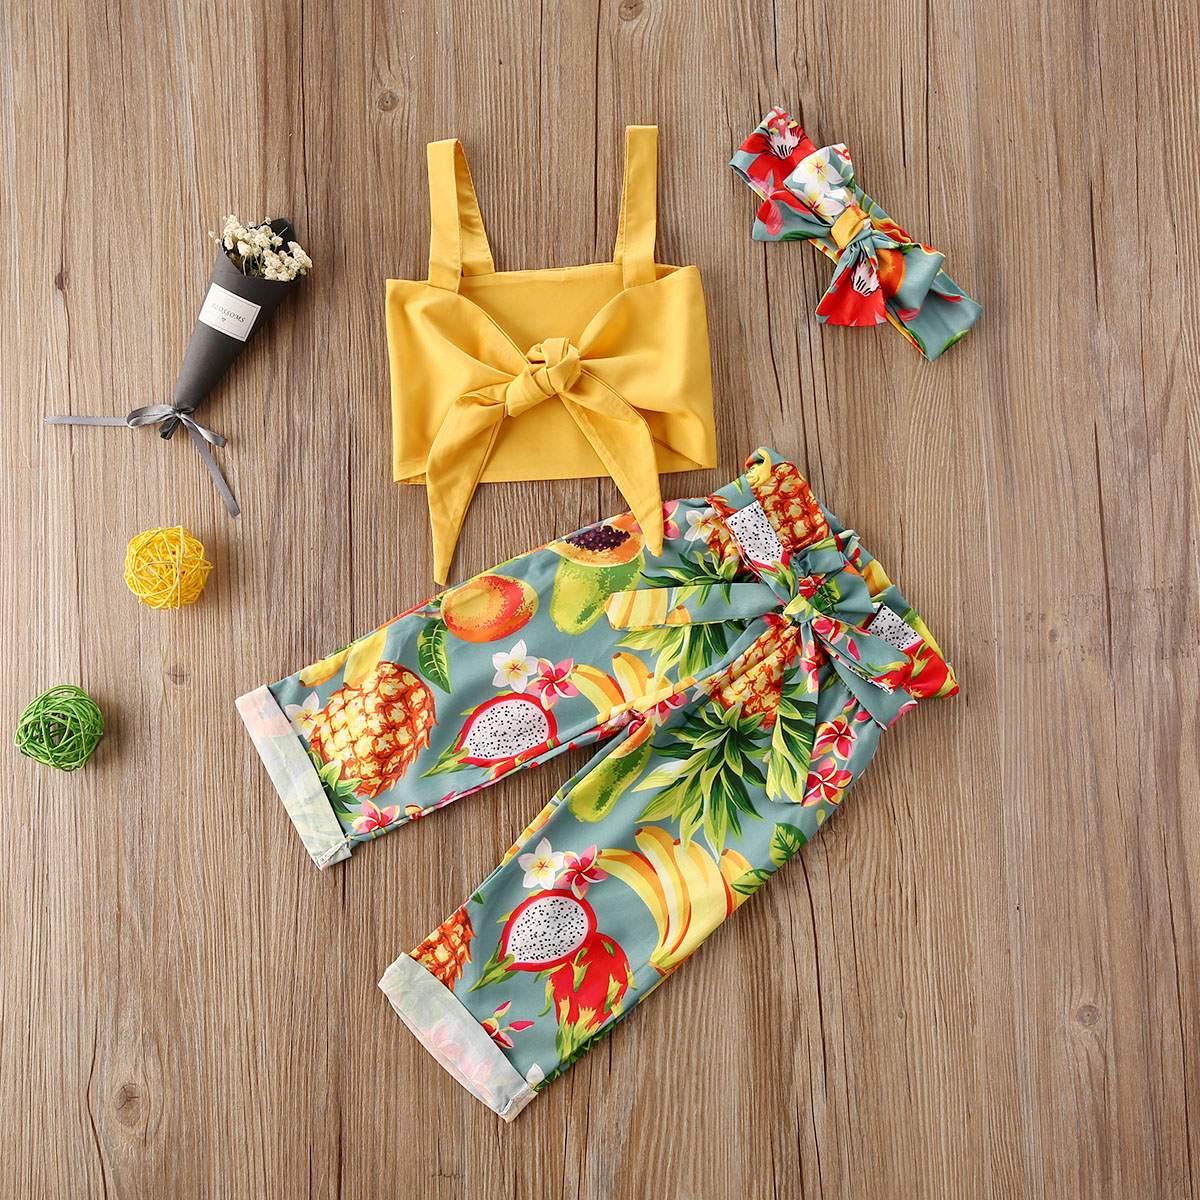 Newborn Baby Girls Clothes Summer Casual Headband Off Shoudler Bow Strap Vest Fruits Print Trousers 3pc Cotton Set